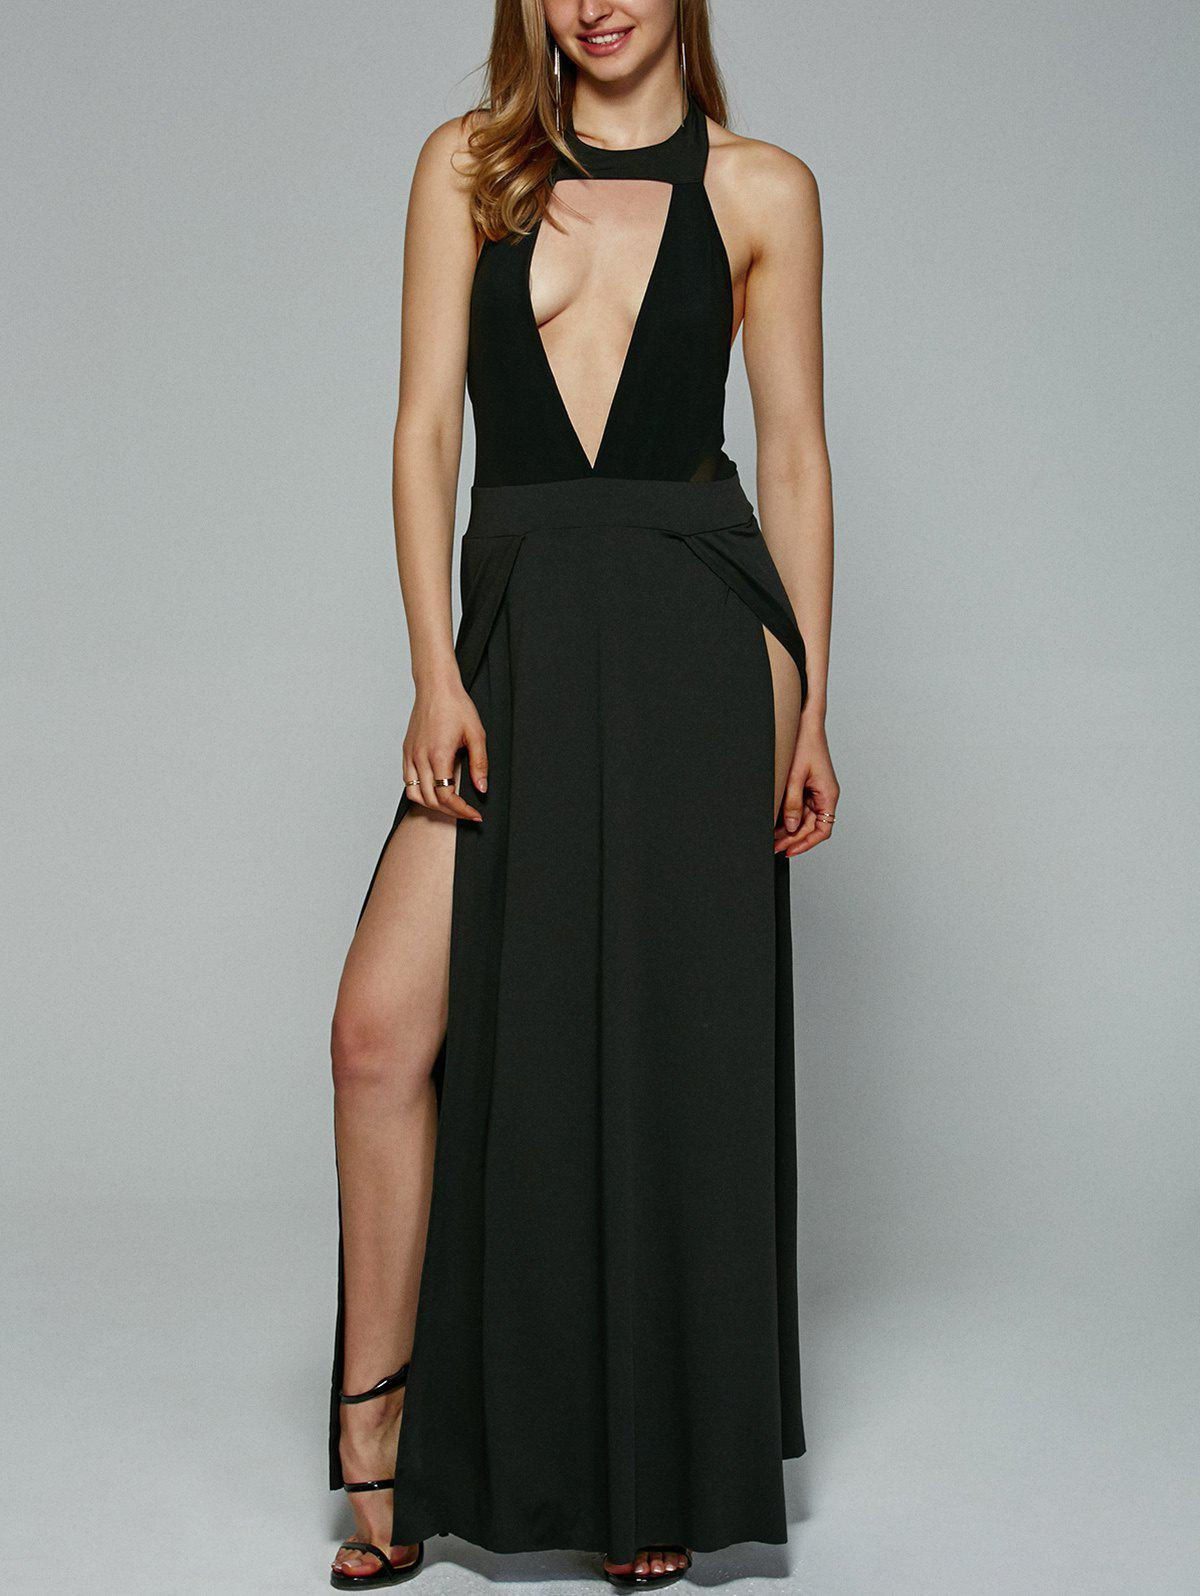 Alluring Backless Hollow Out High Slit Maxi Dress For Women - BLACK XL